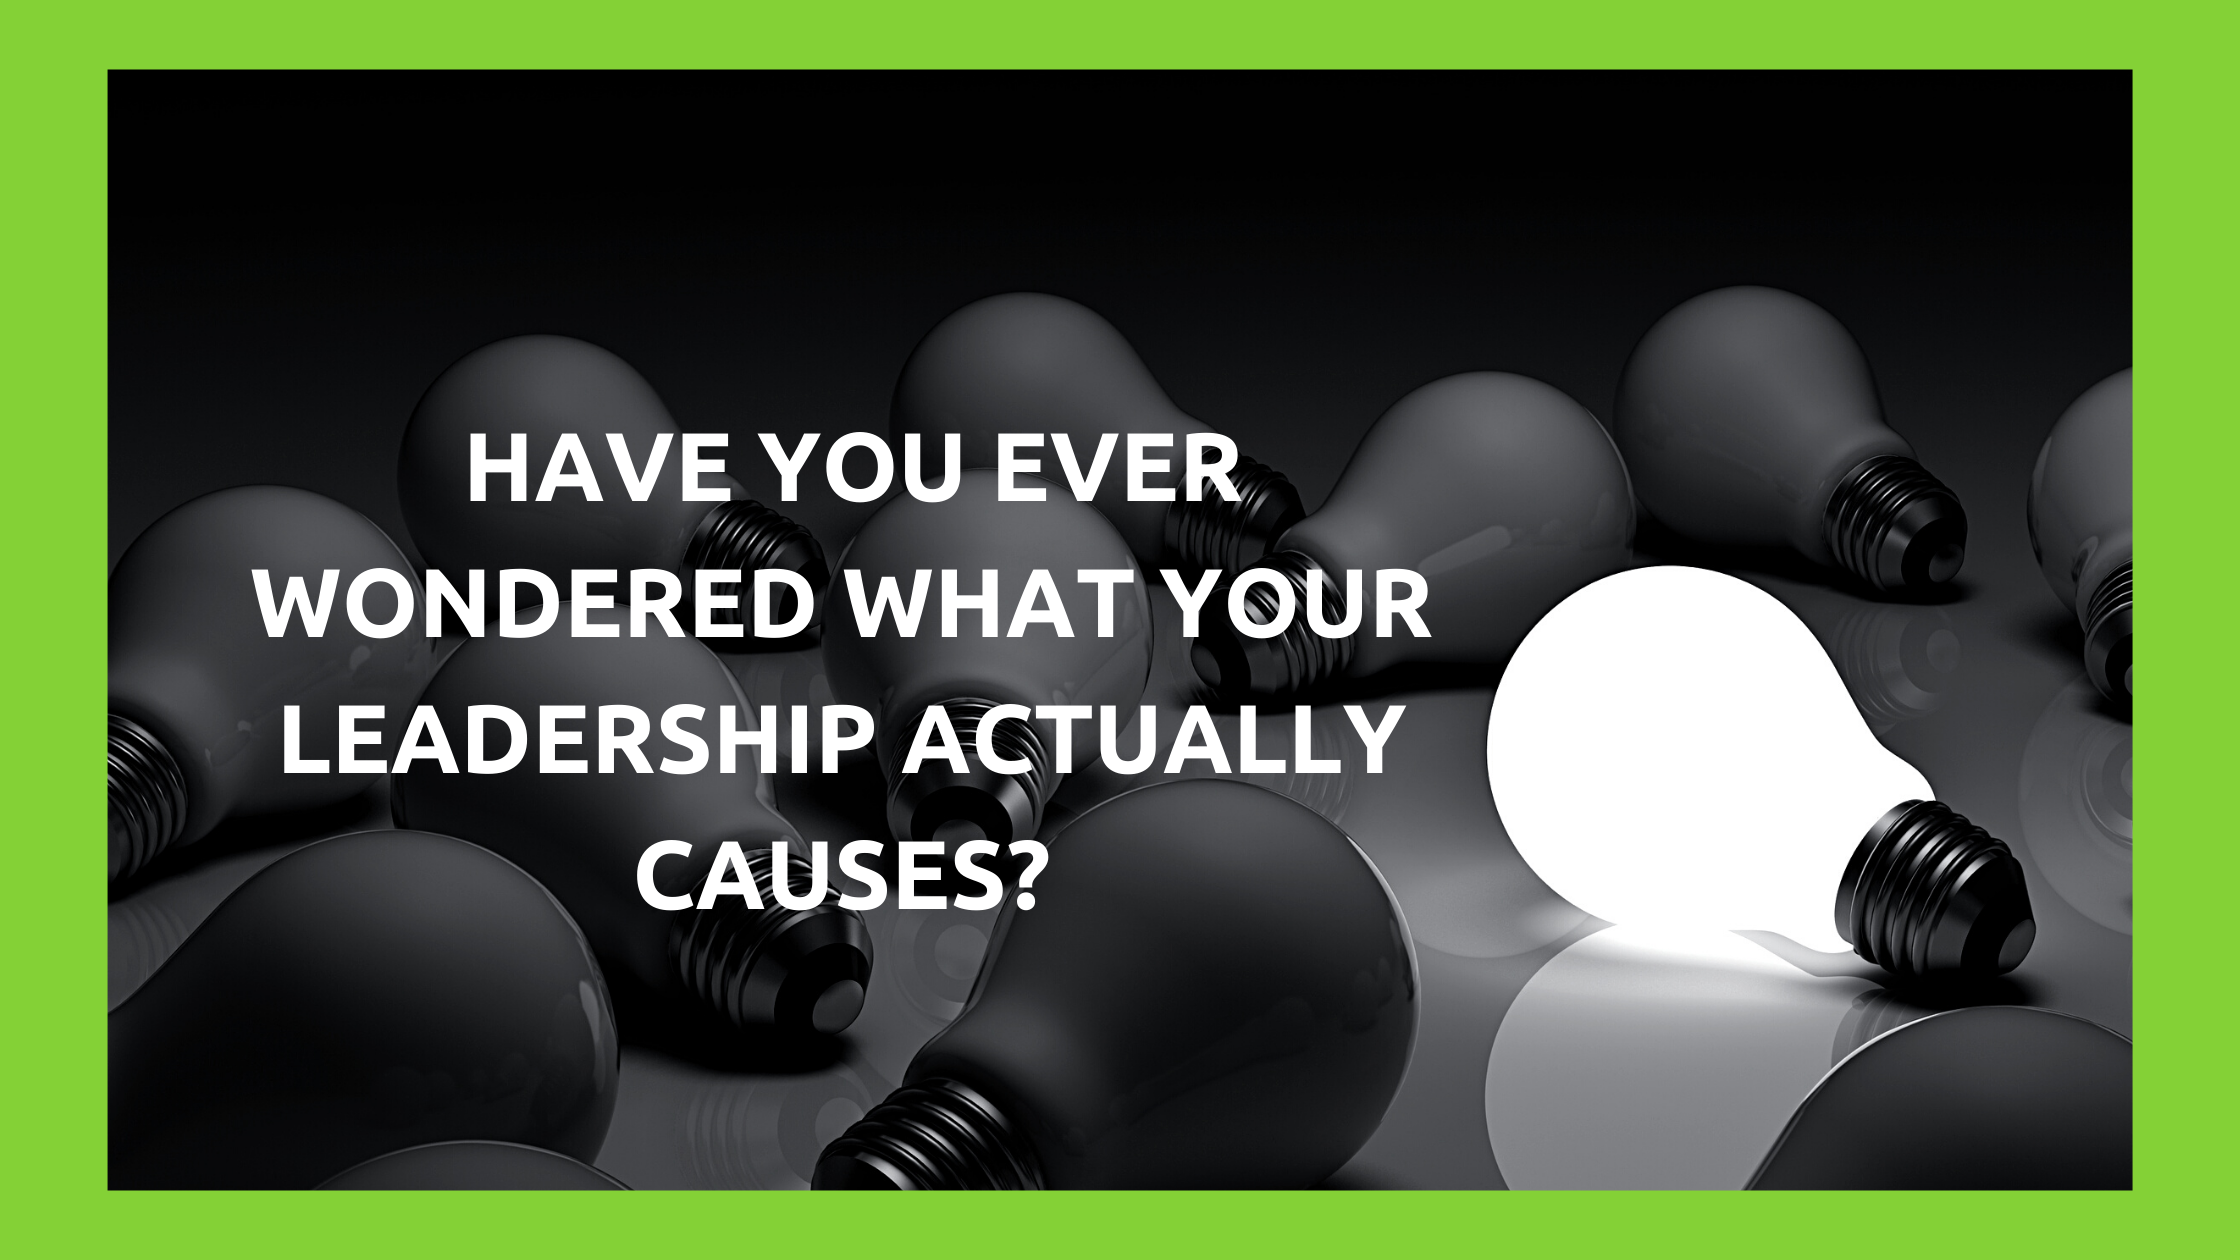 Have You Ever Wondered What Your Leadership Actually Causes?